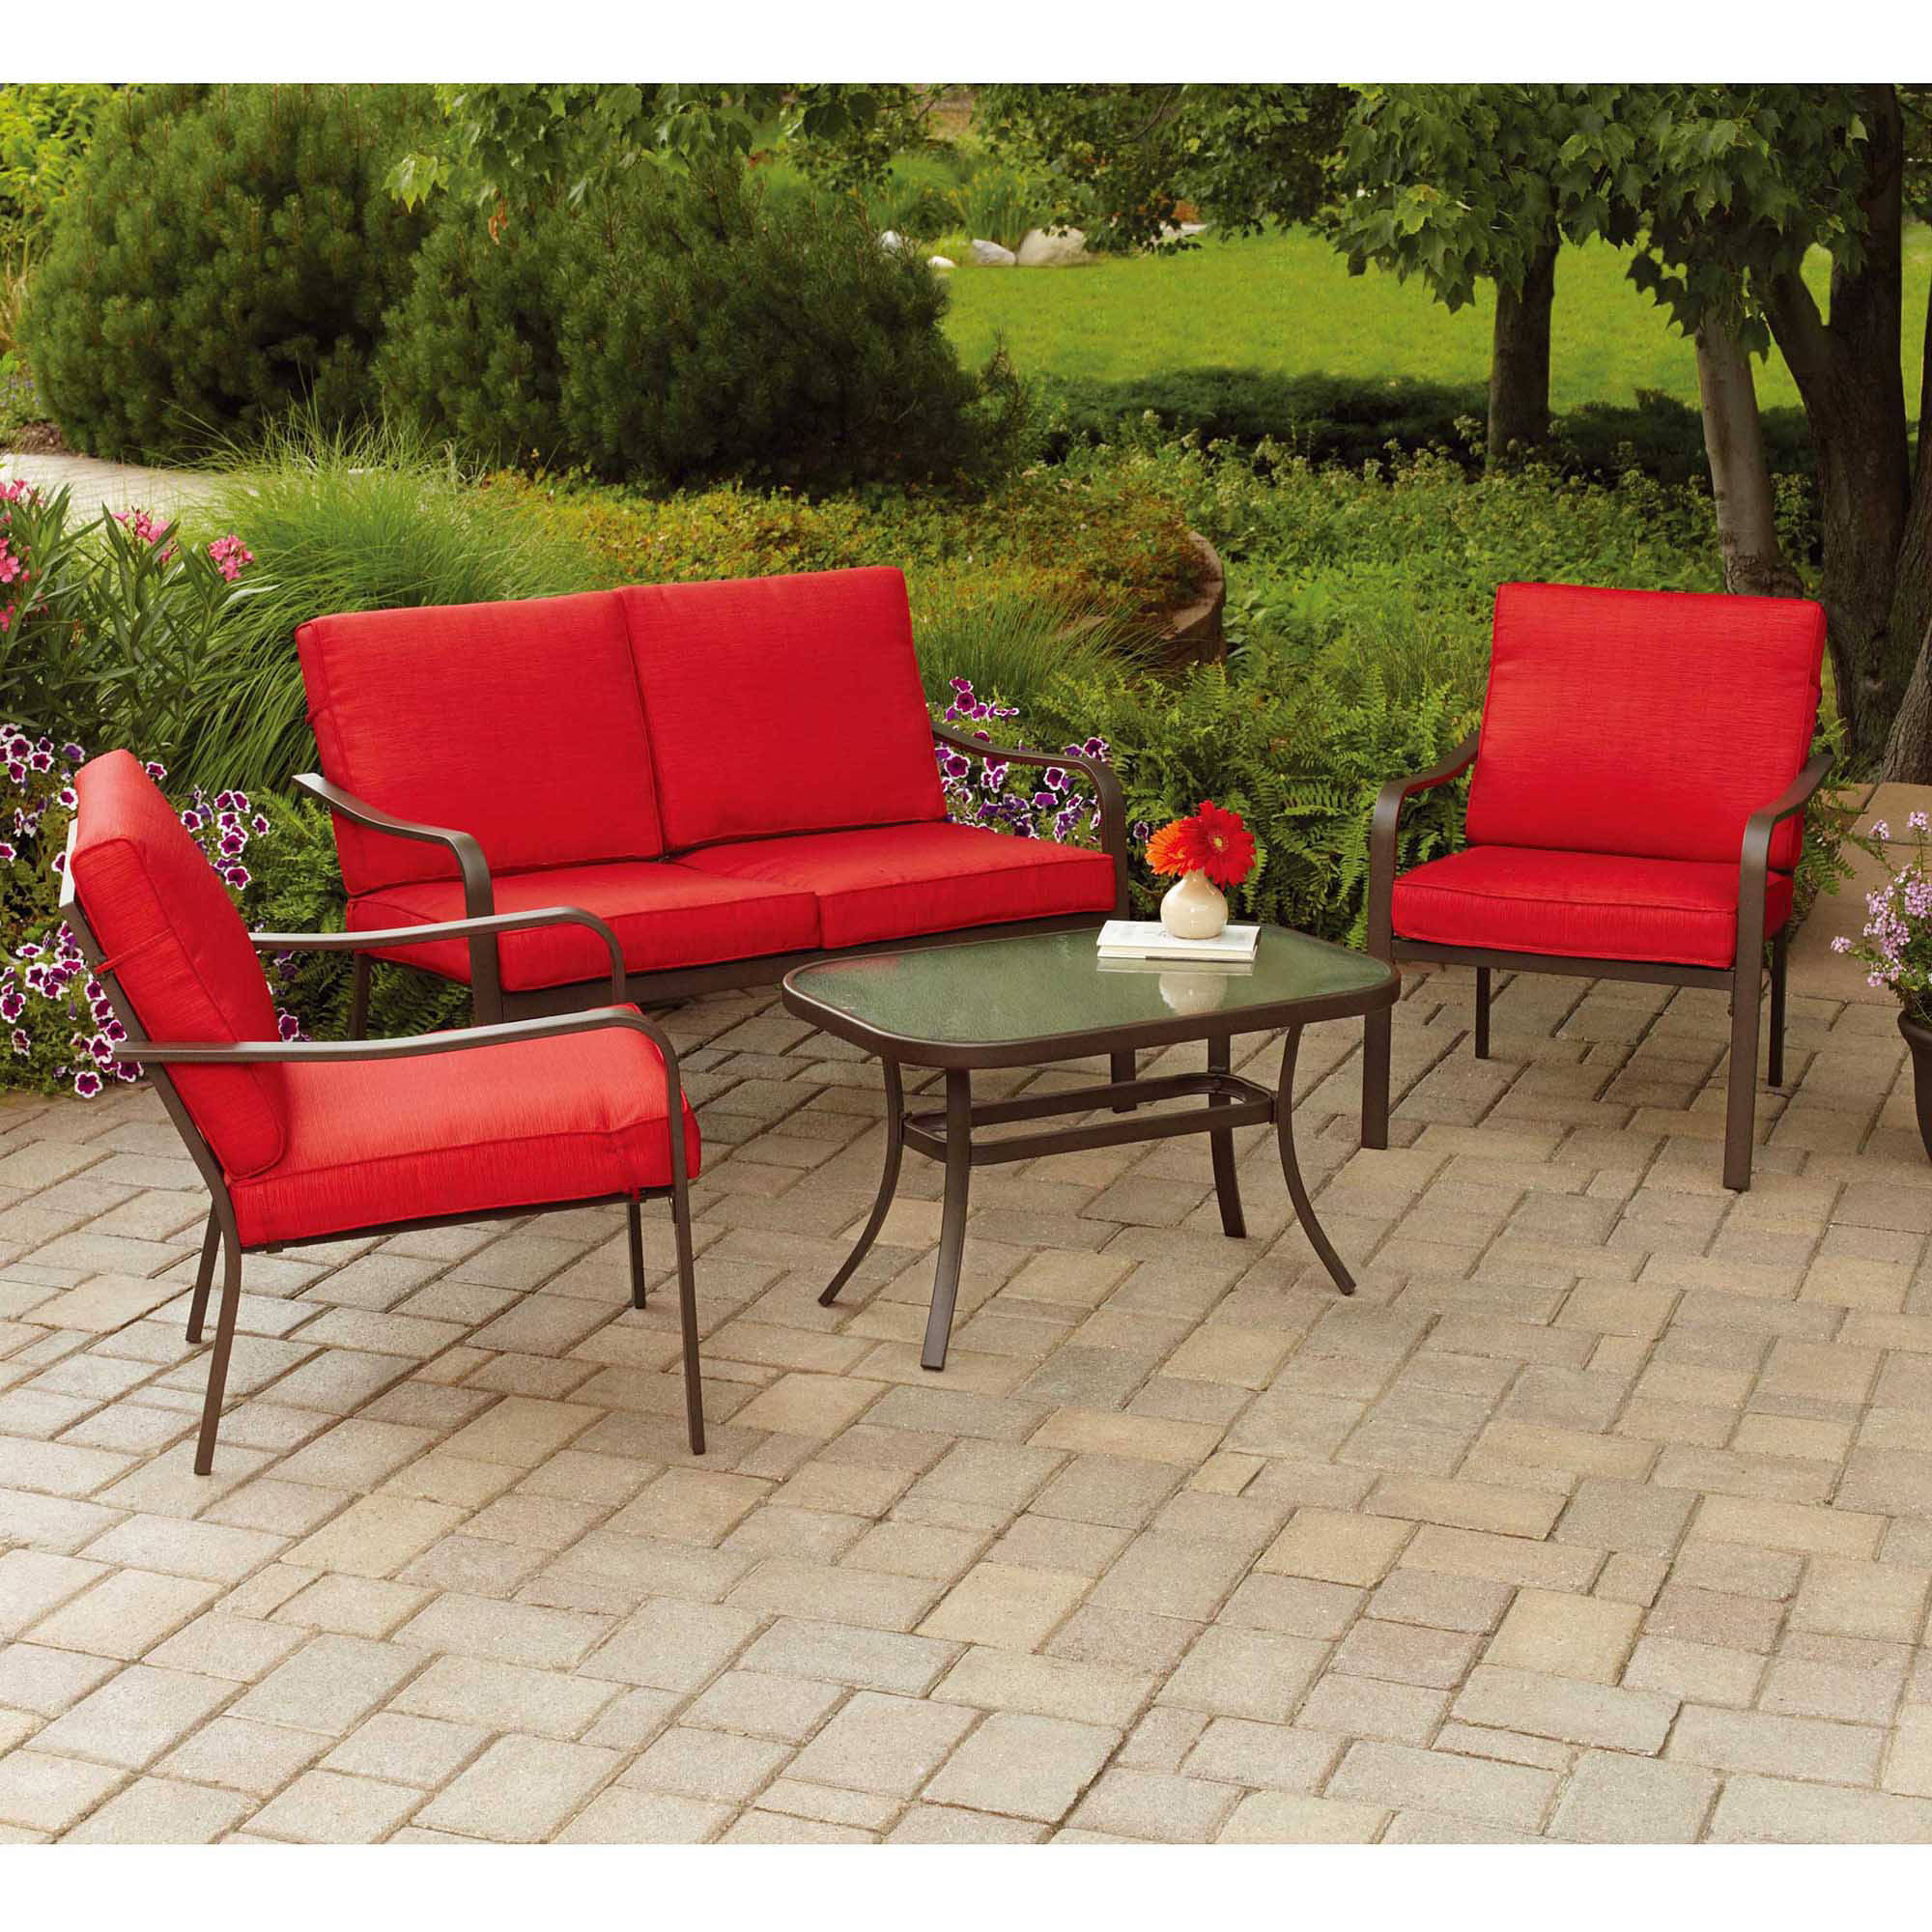 Details about mainstays stanton cushioned 4 piece patio conversation set seats 4